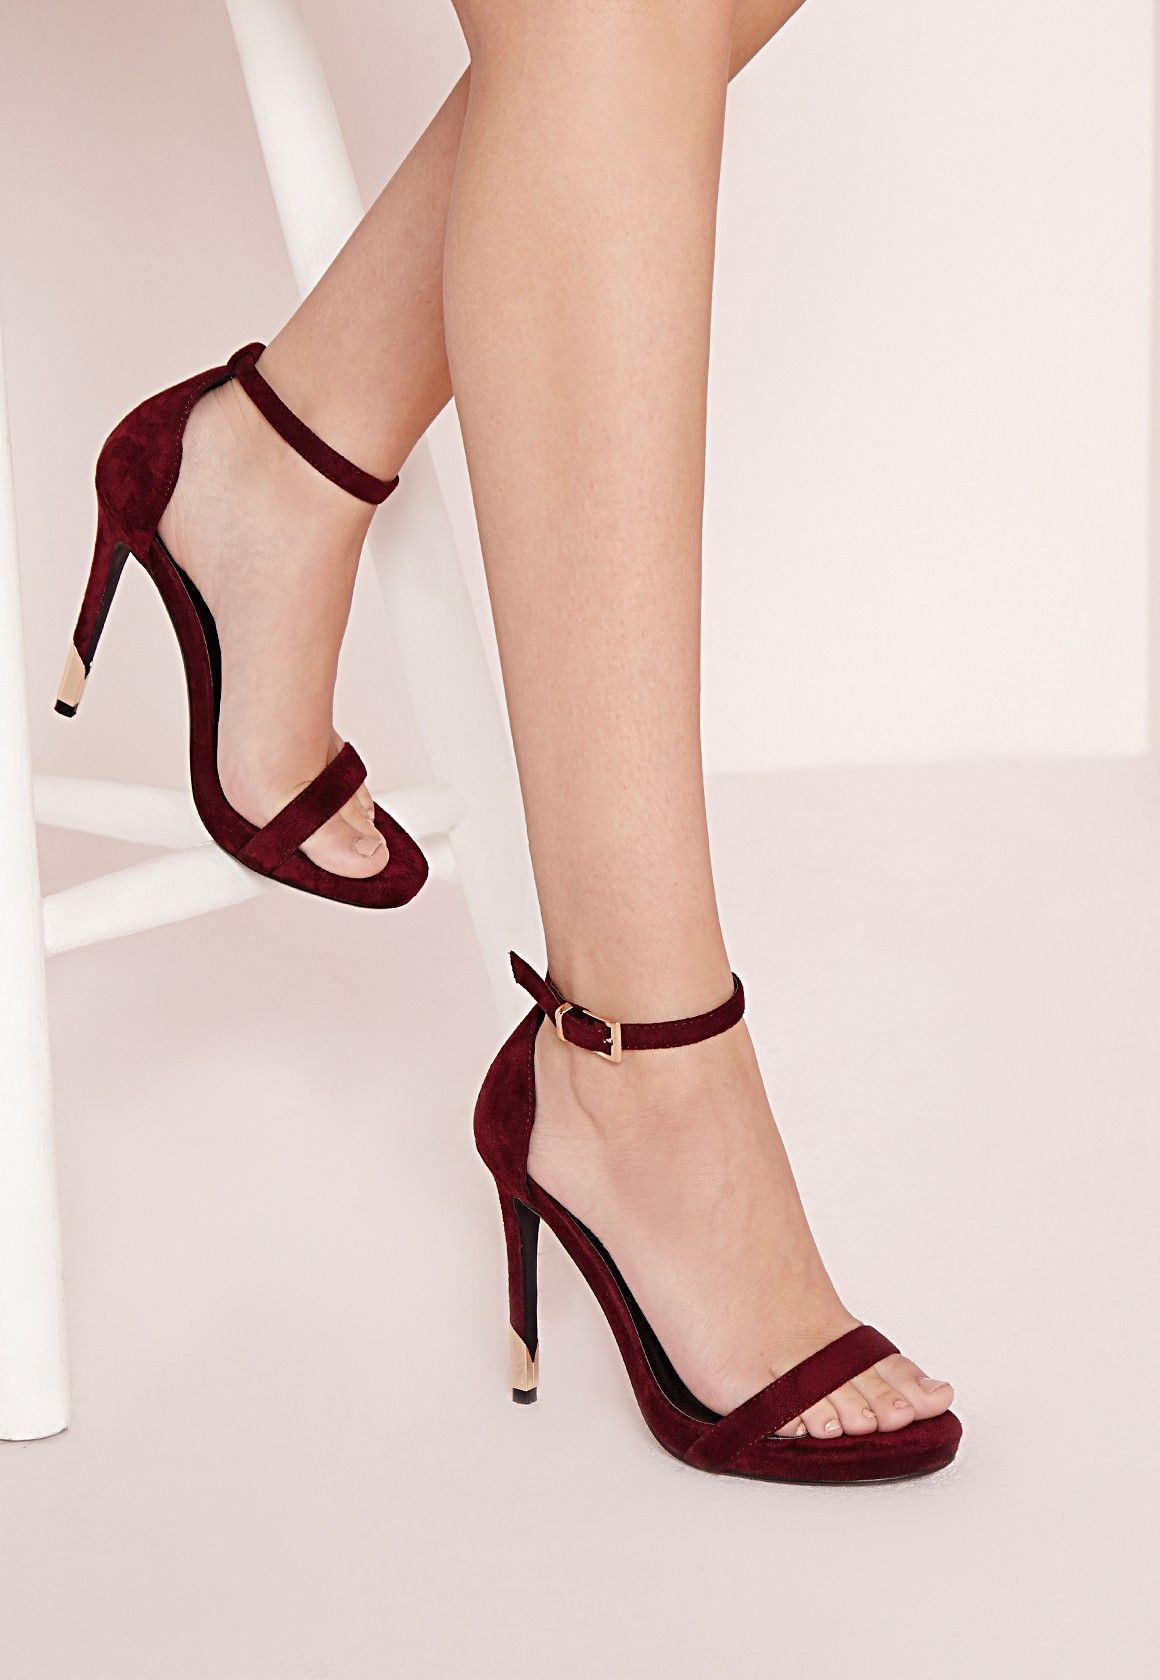 Gold Trim Barely There Heeled Sandals Berry Shoes High